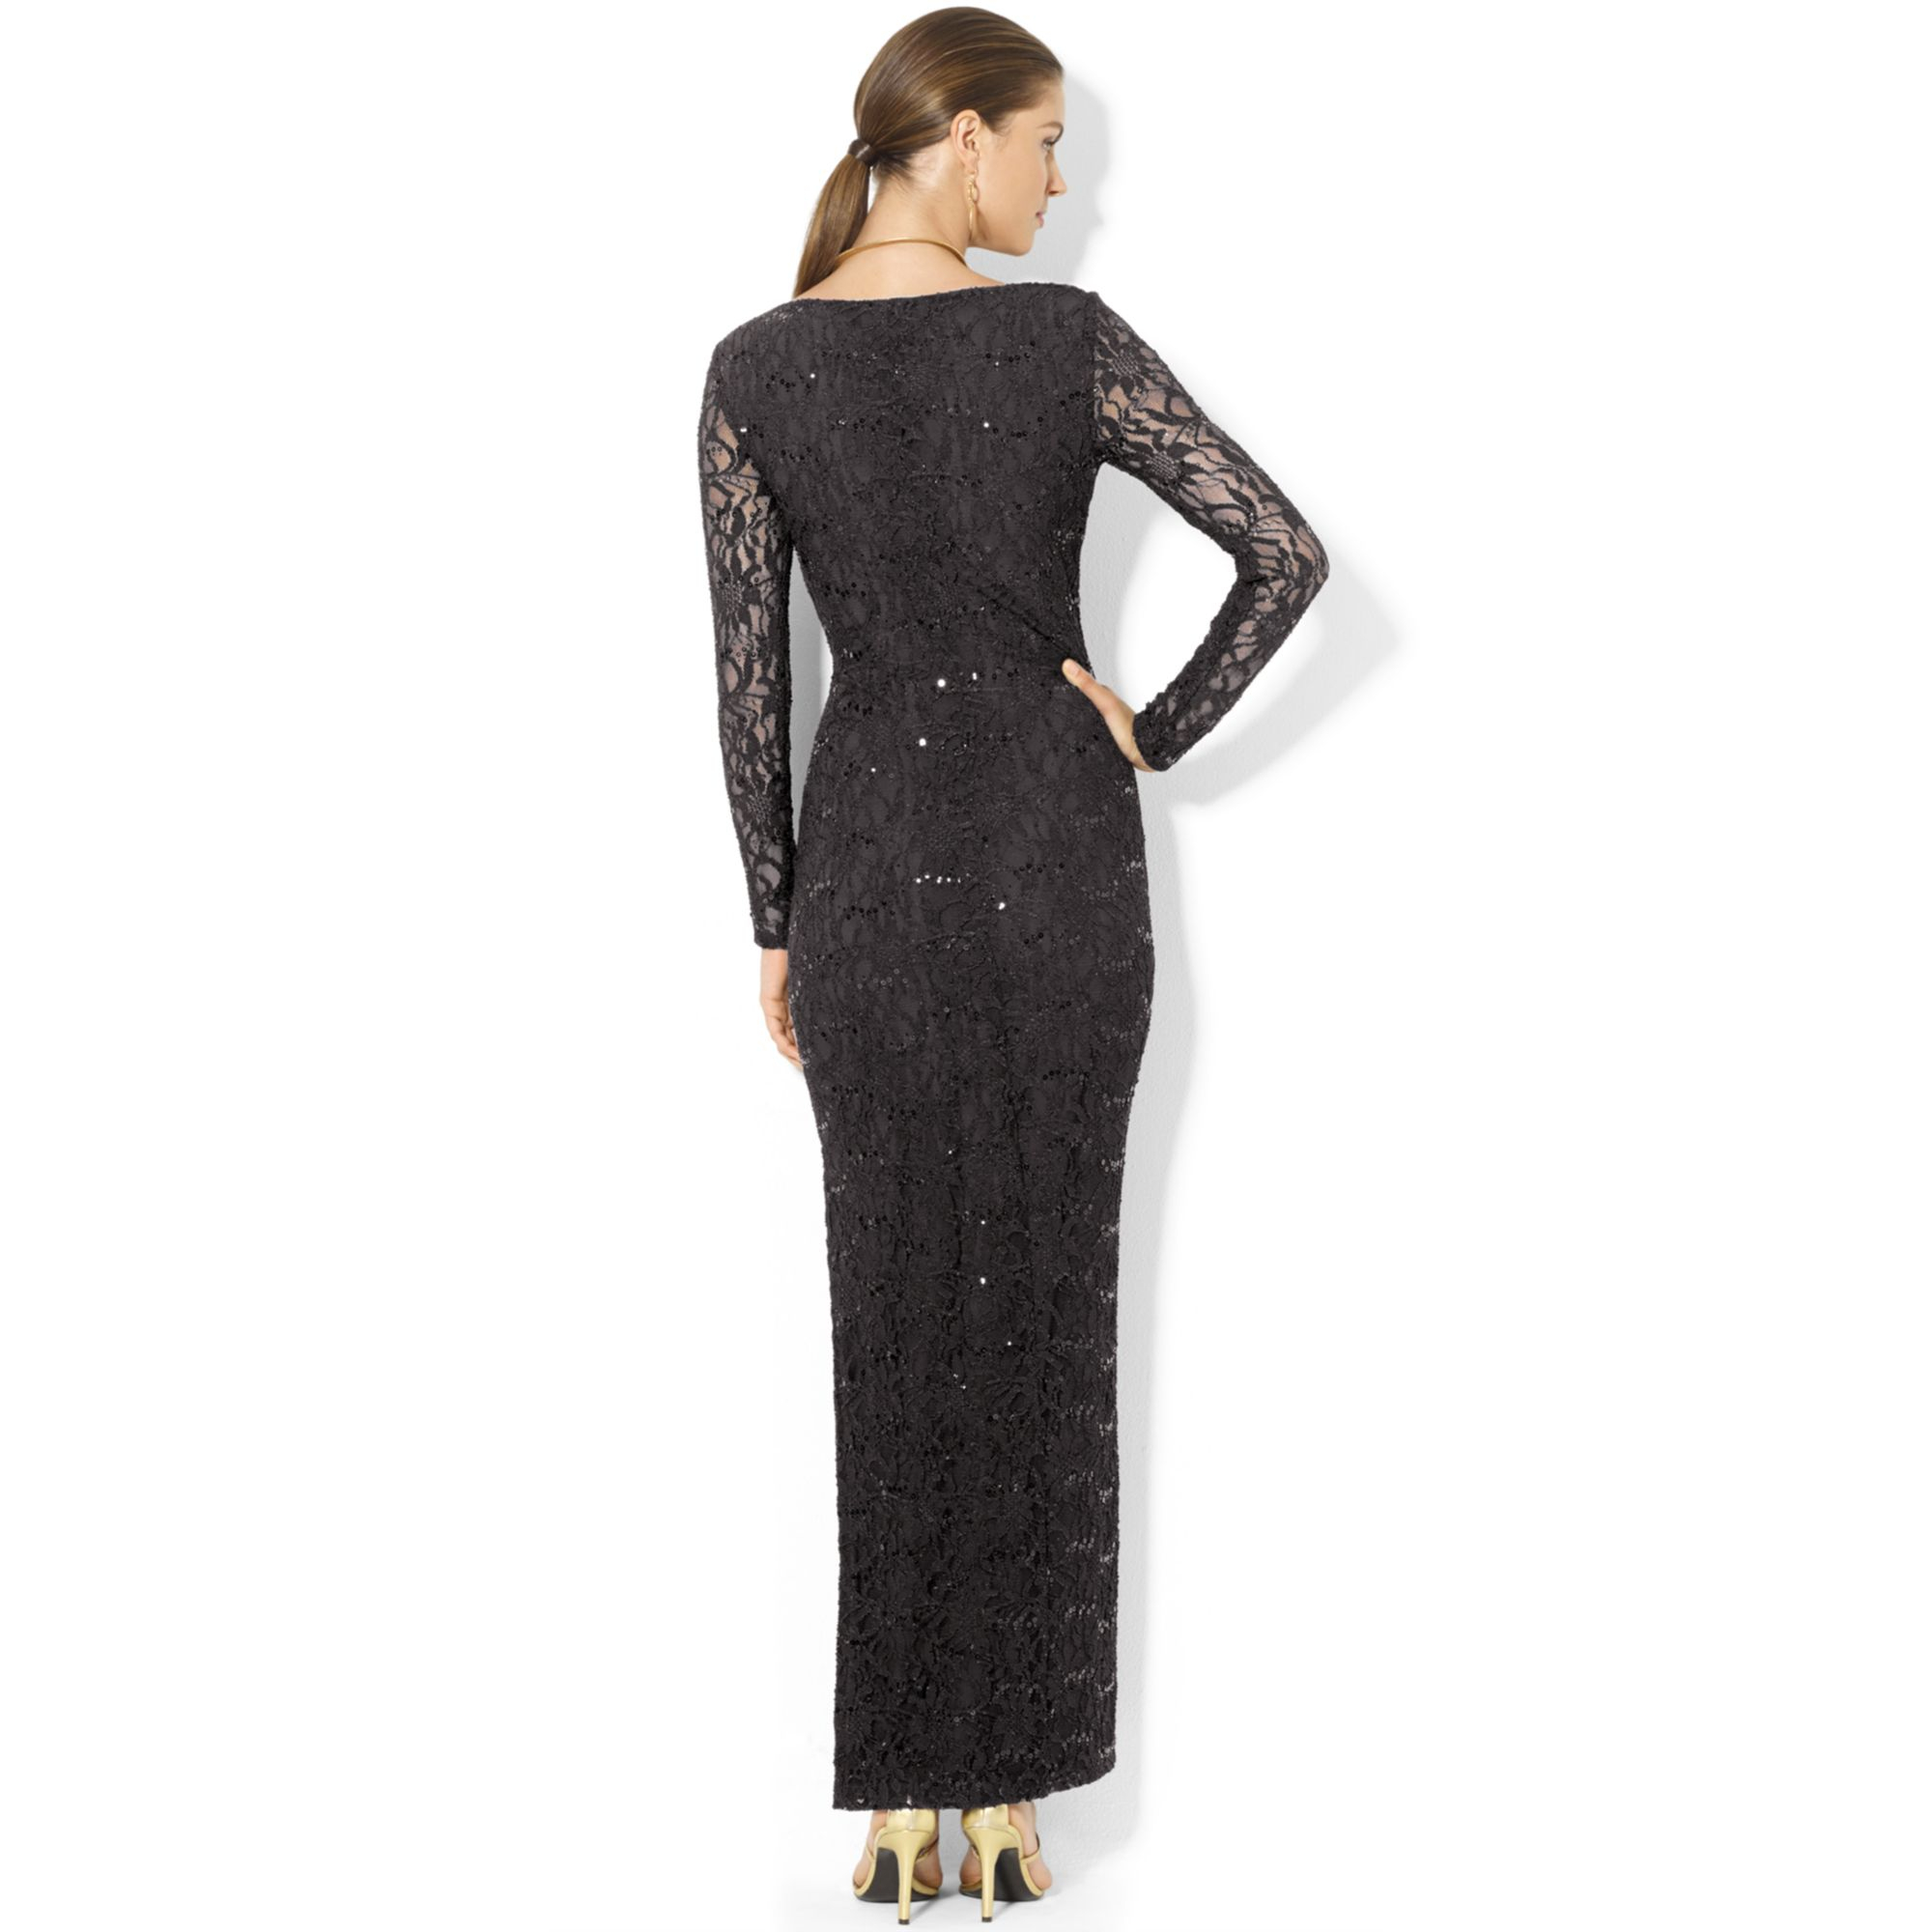 1190b41830f2c Lauren by Ralph Lauren Longsleeve Sequined Lace Gown in Black - Lyst